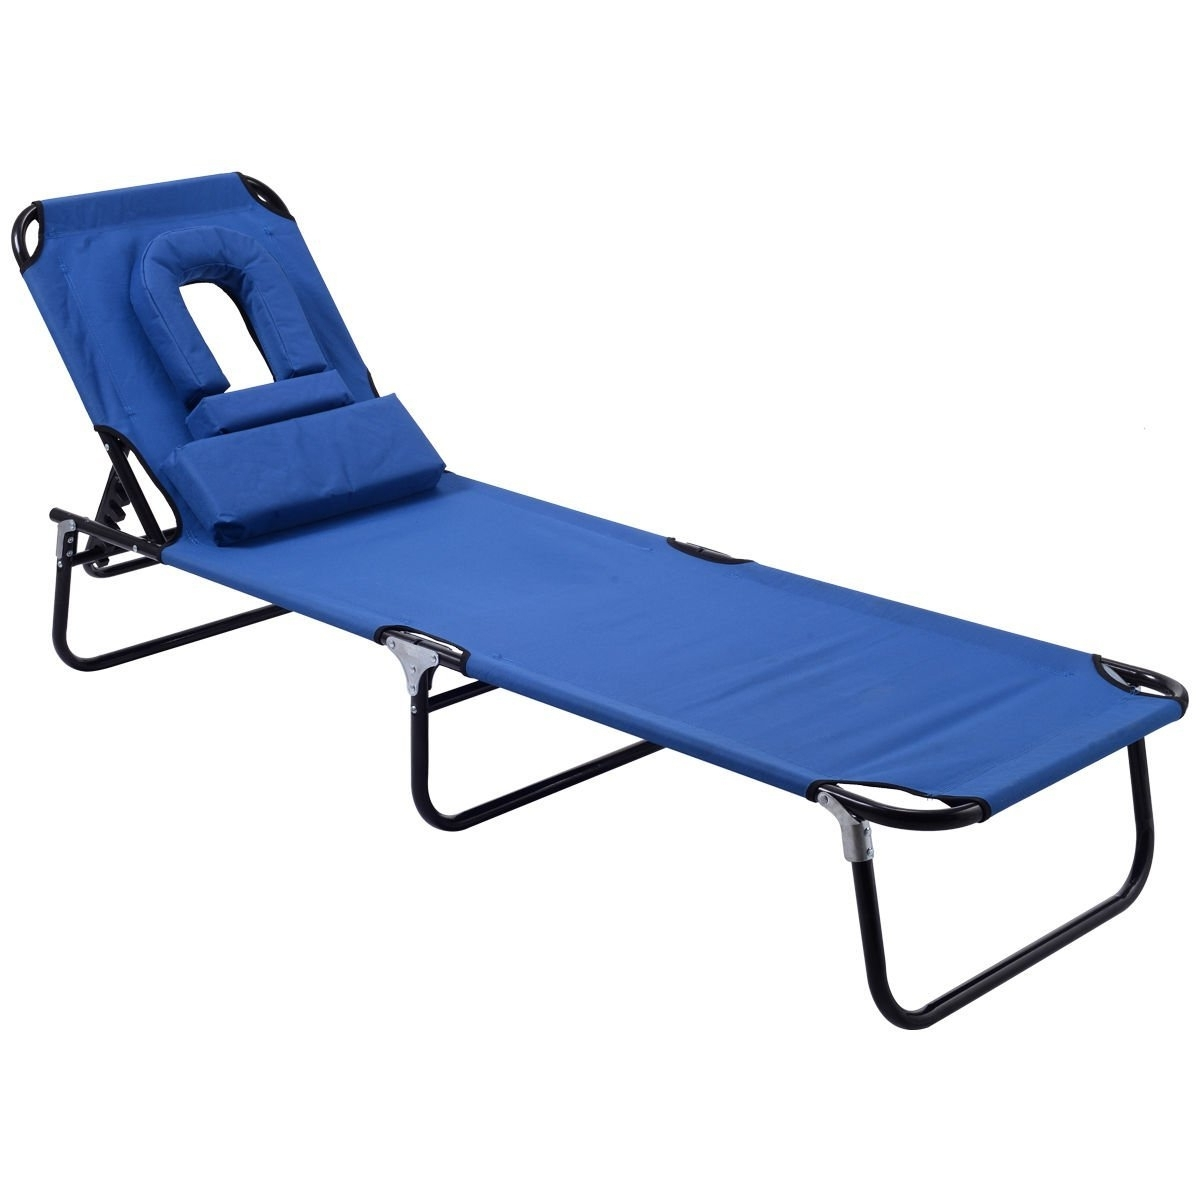 Ostrich Chaise Lounges For Favorite Amazon: Goplus Folding Chaise Lounge Chair Bed Outdoor Patio (View 11 of 15)